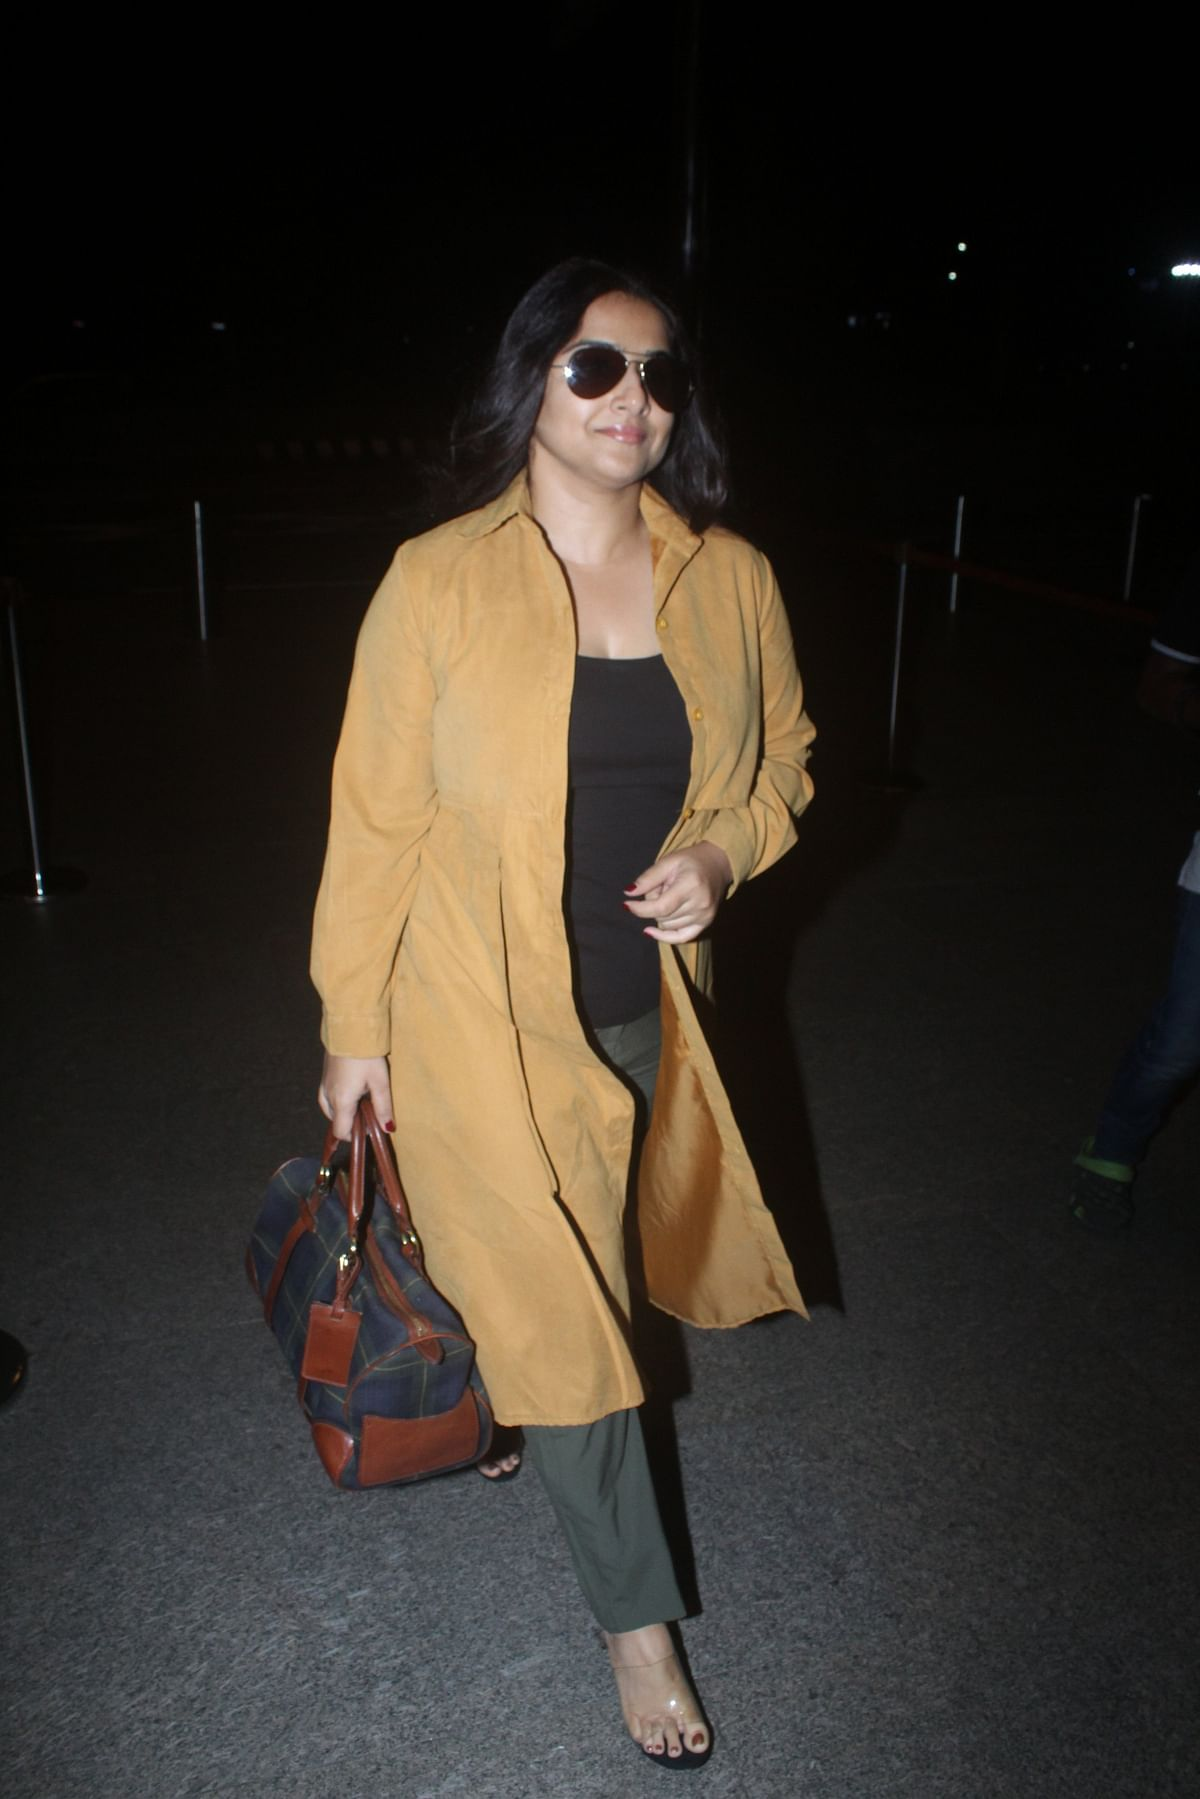 Vidya Balan was spotted at the airport in a casual attire that stood out with her mustard long jacket.